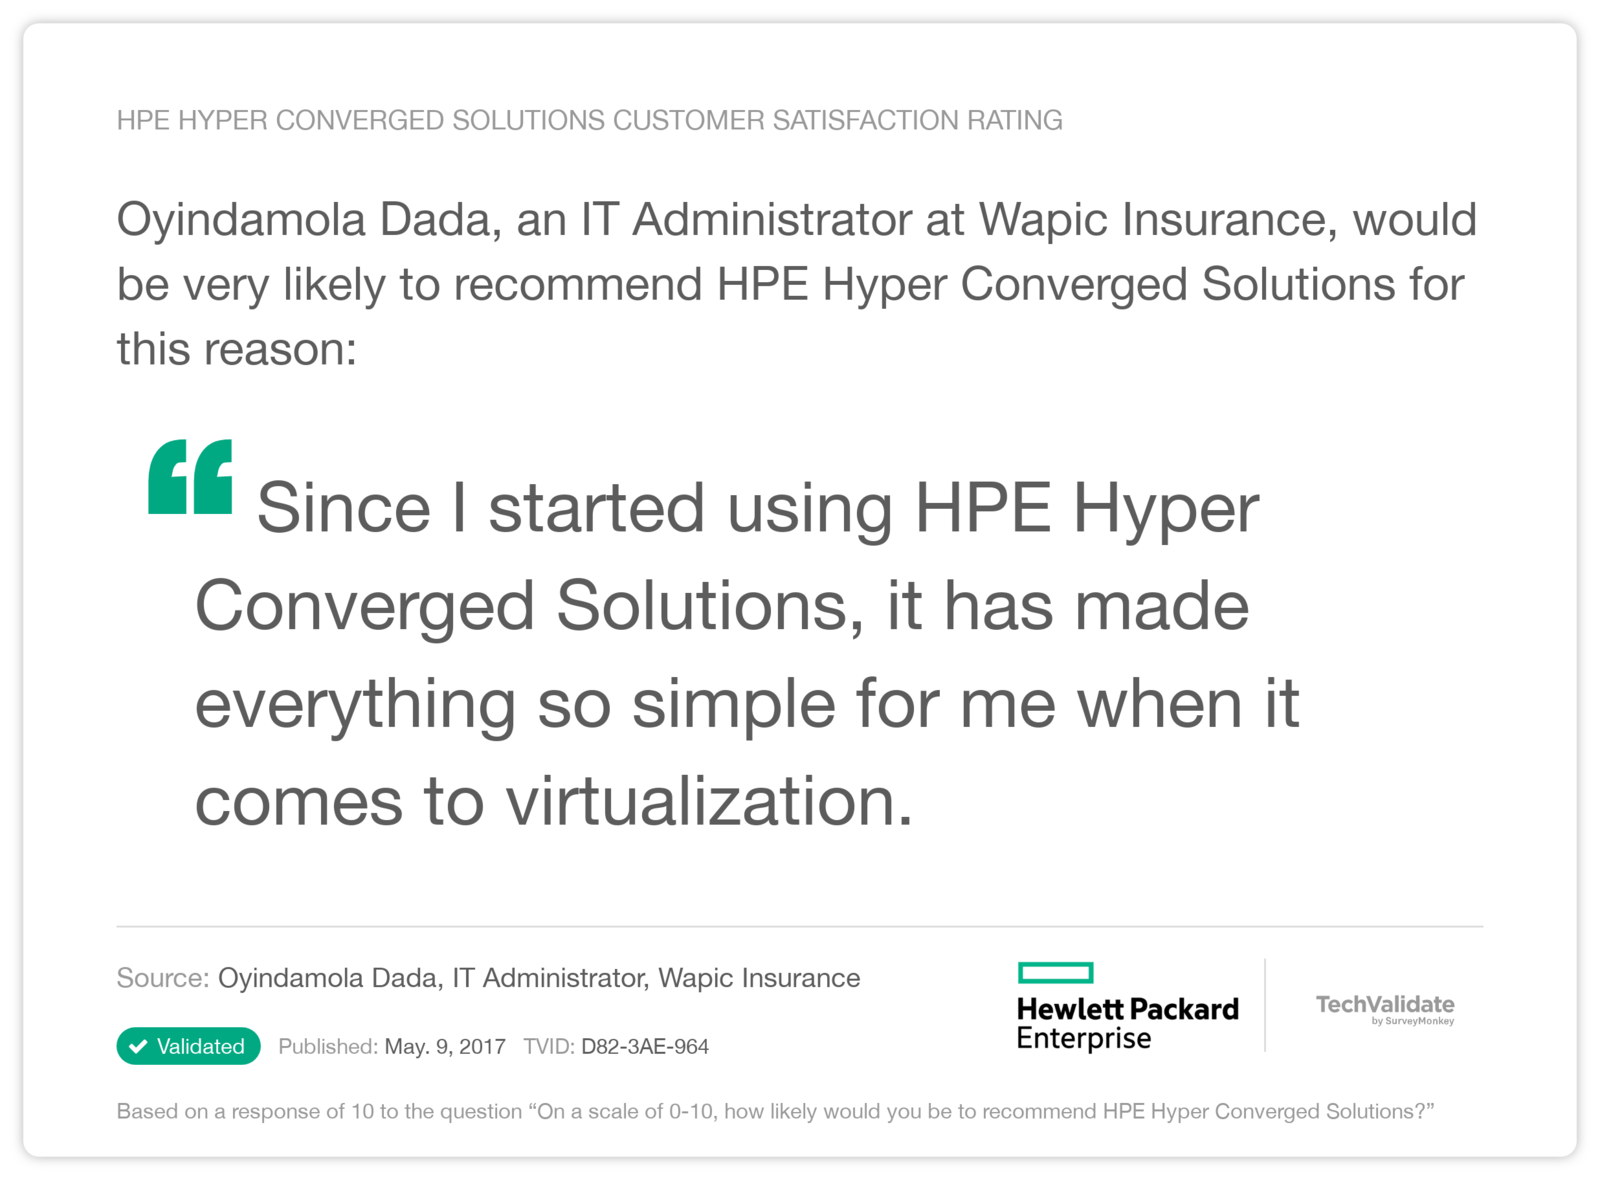 HPE Hyper Converged Solutions Customer Satisfaction Rating